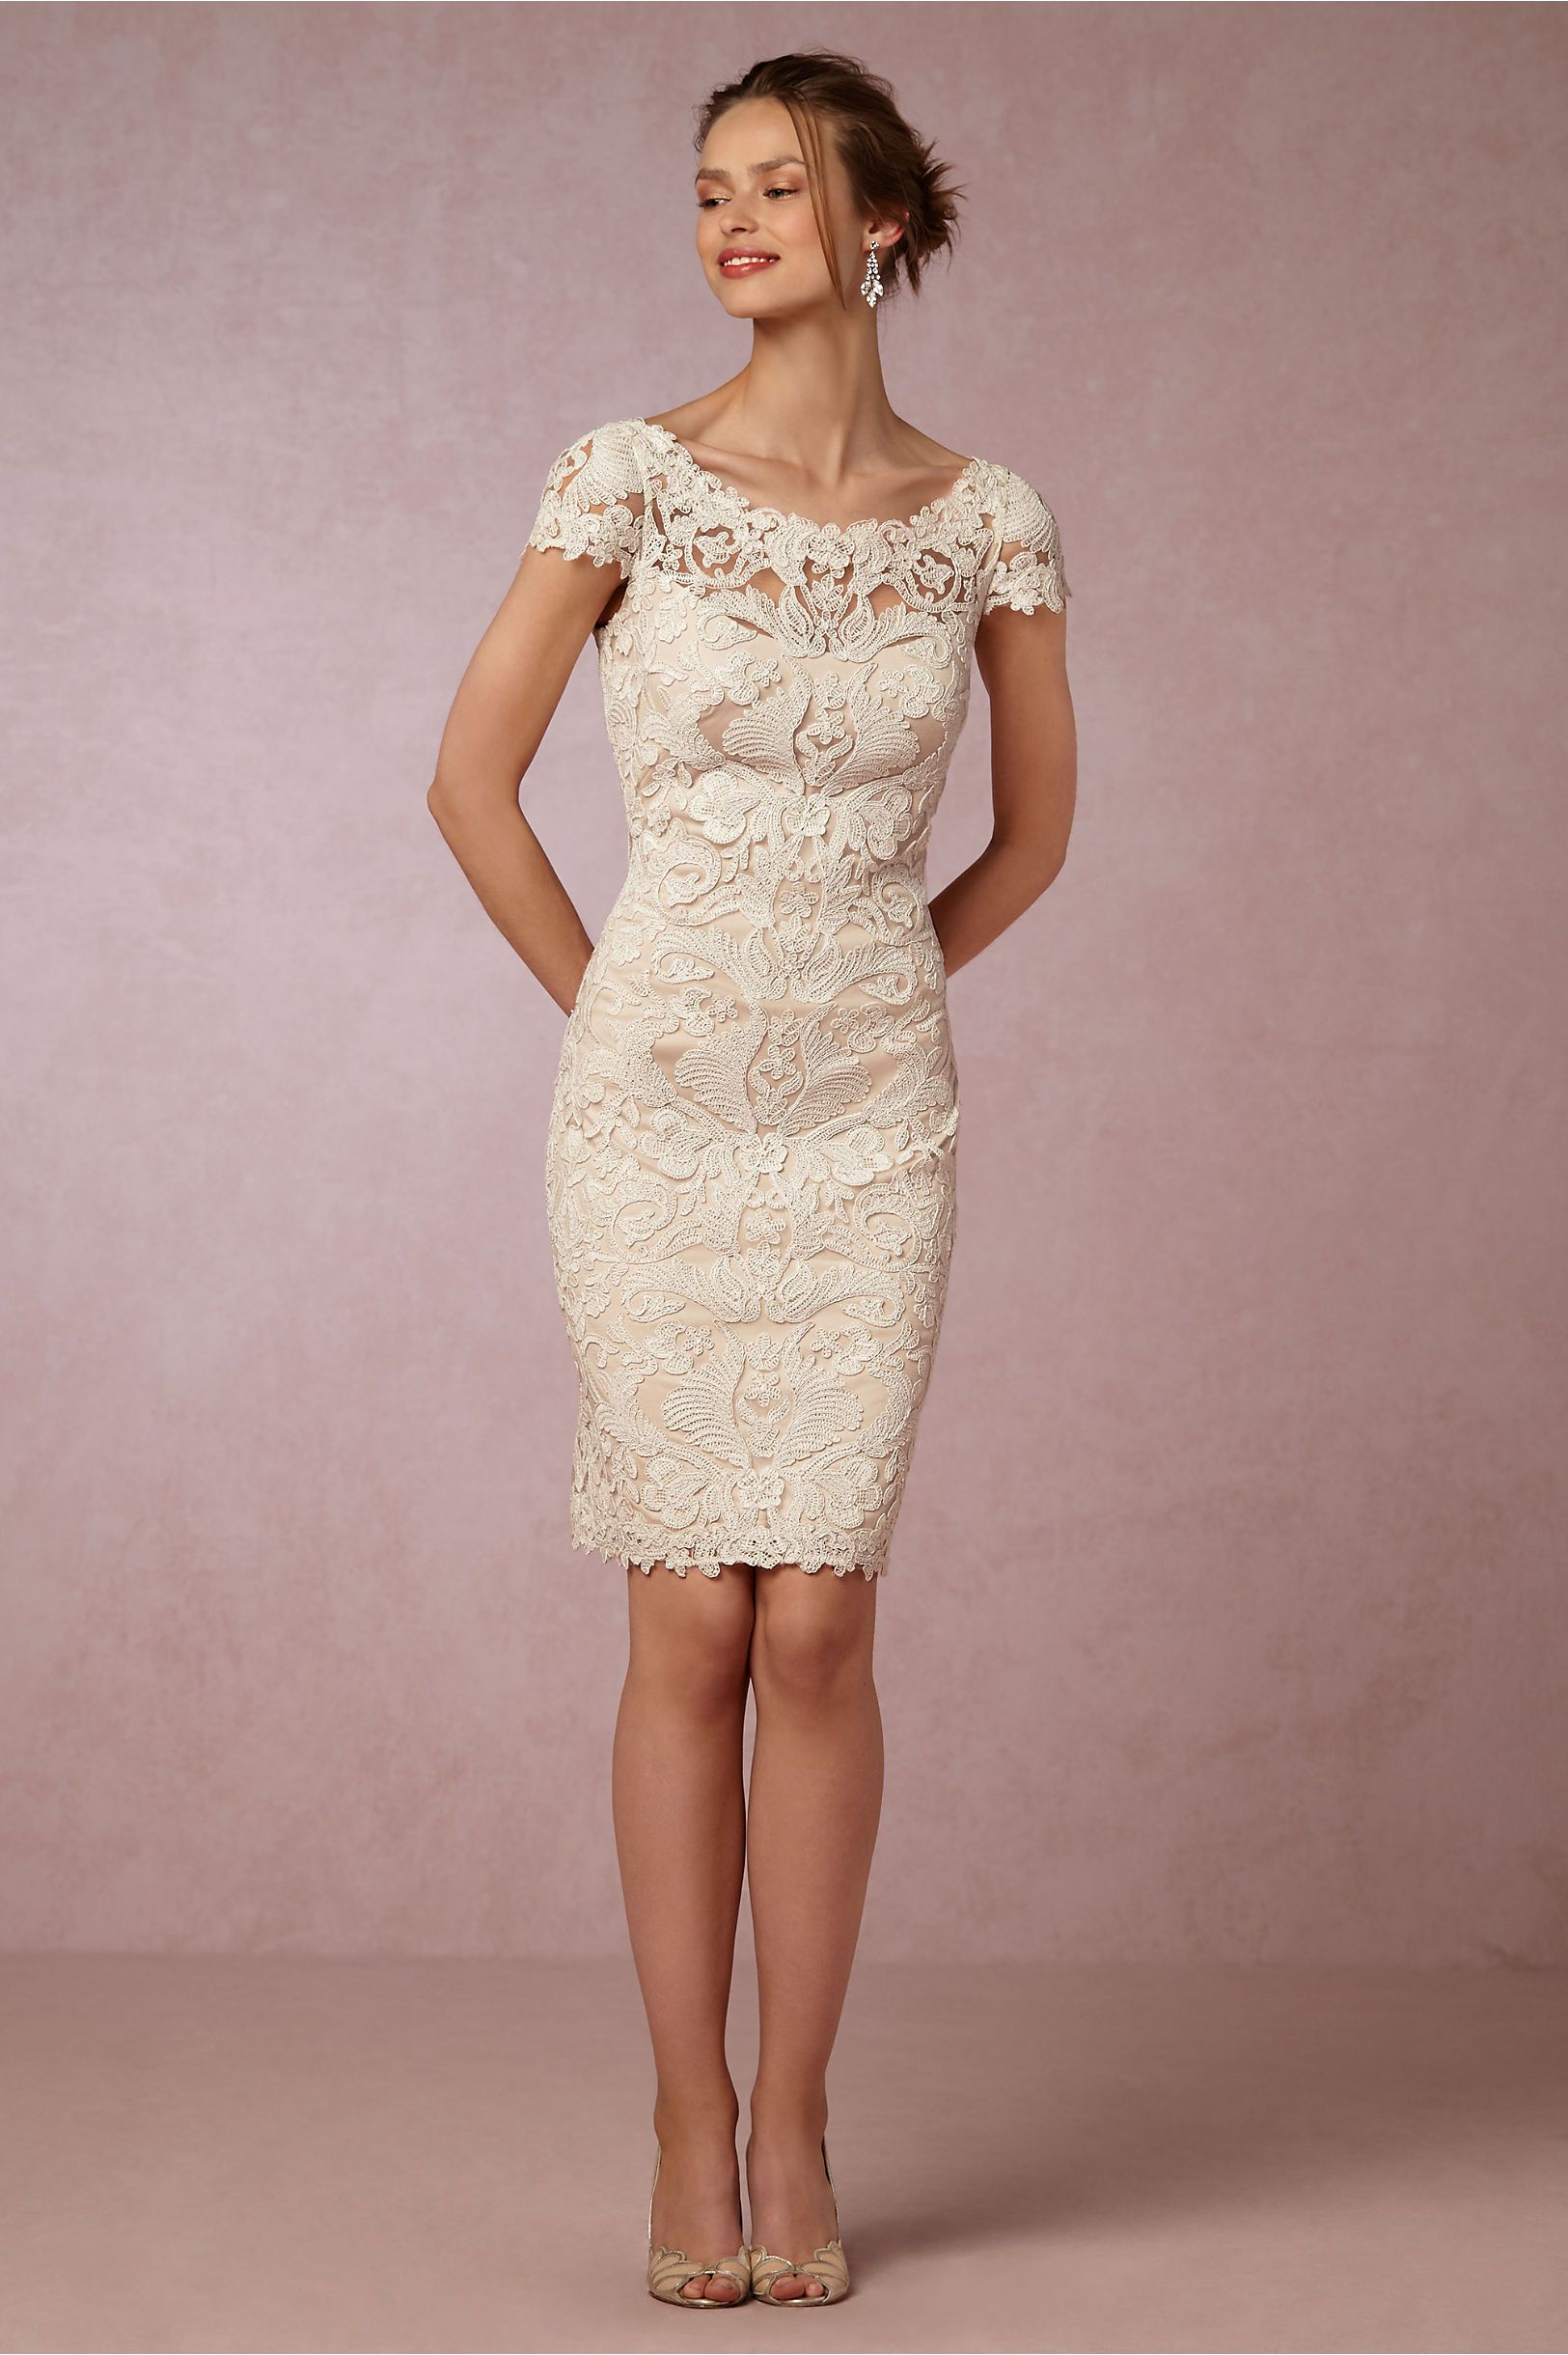 s7d1.scene7.com is image BHLDN 34669515_011_a?$zoom-xl$ | Elegante ...